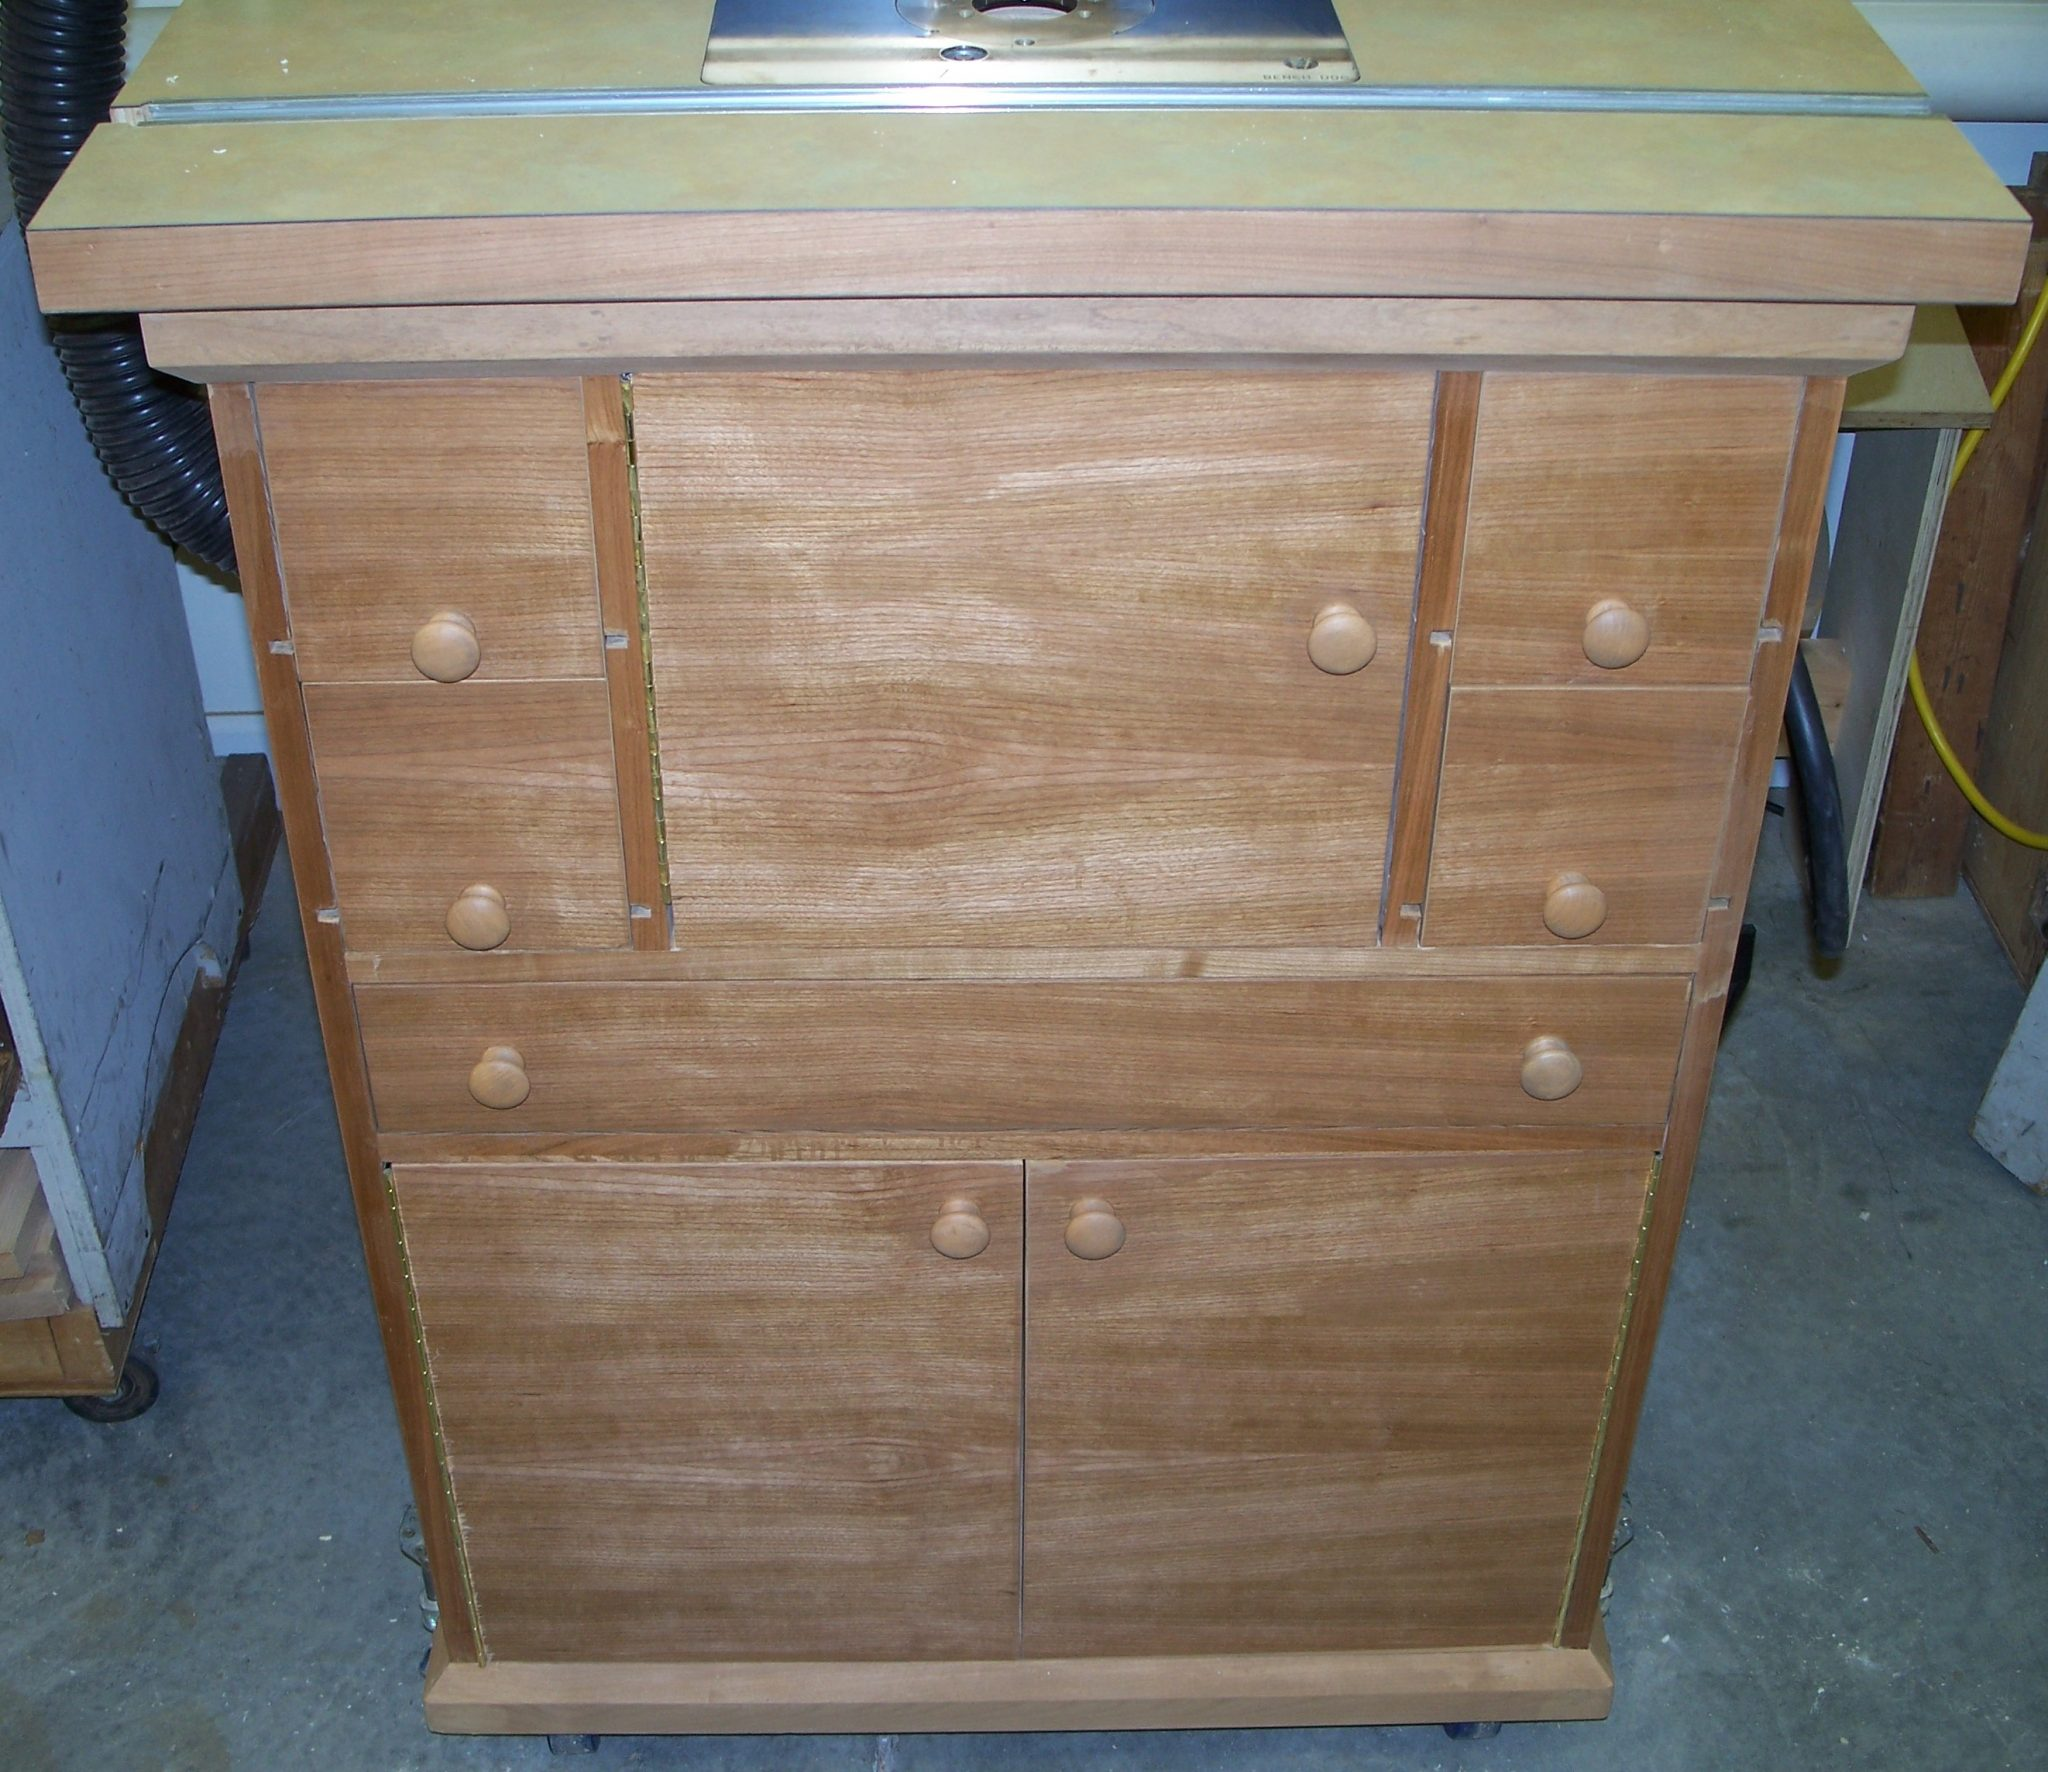 Cherry Plywood Cabinet / Router Table with bit and accessory storage